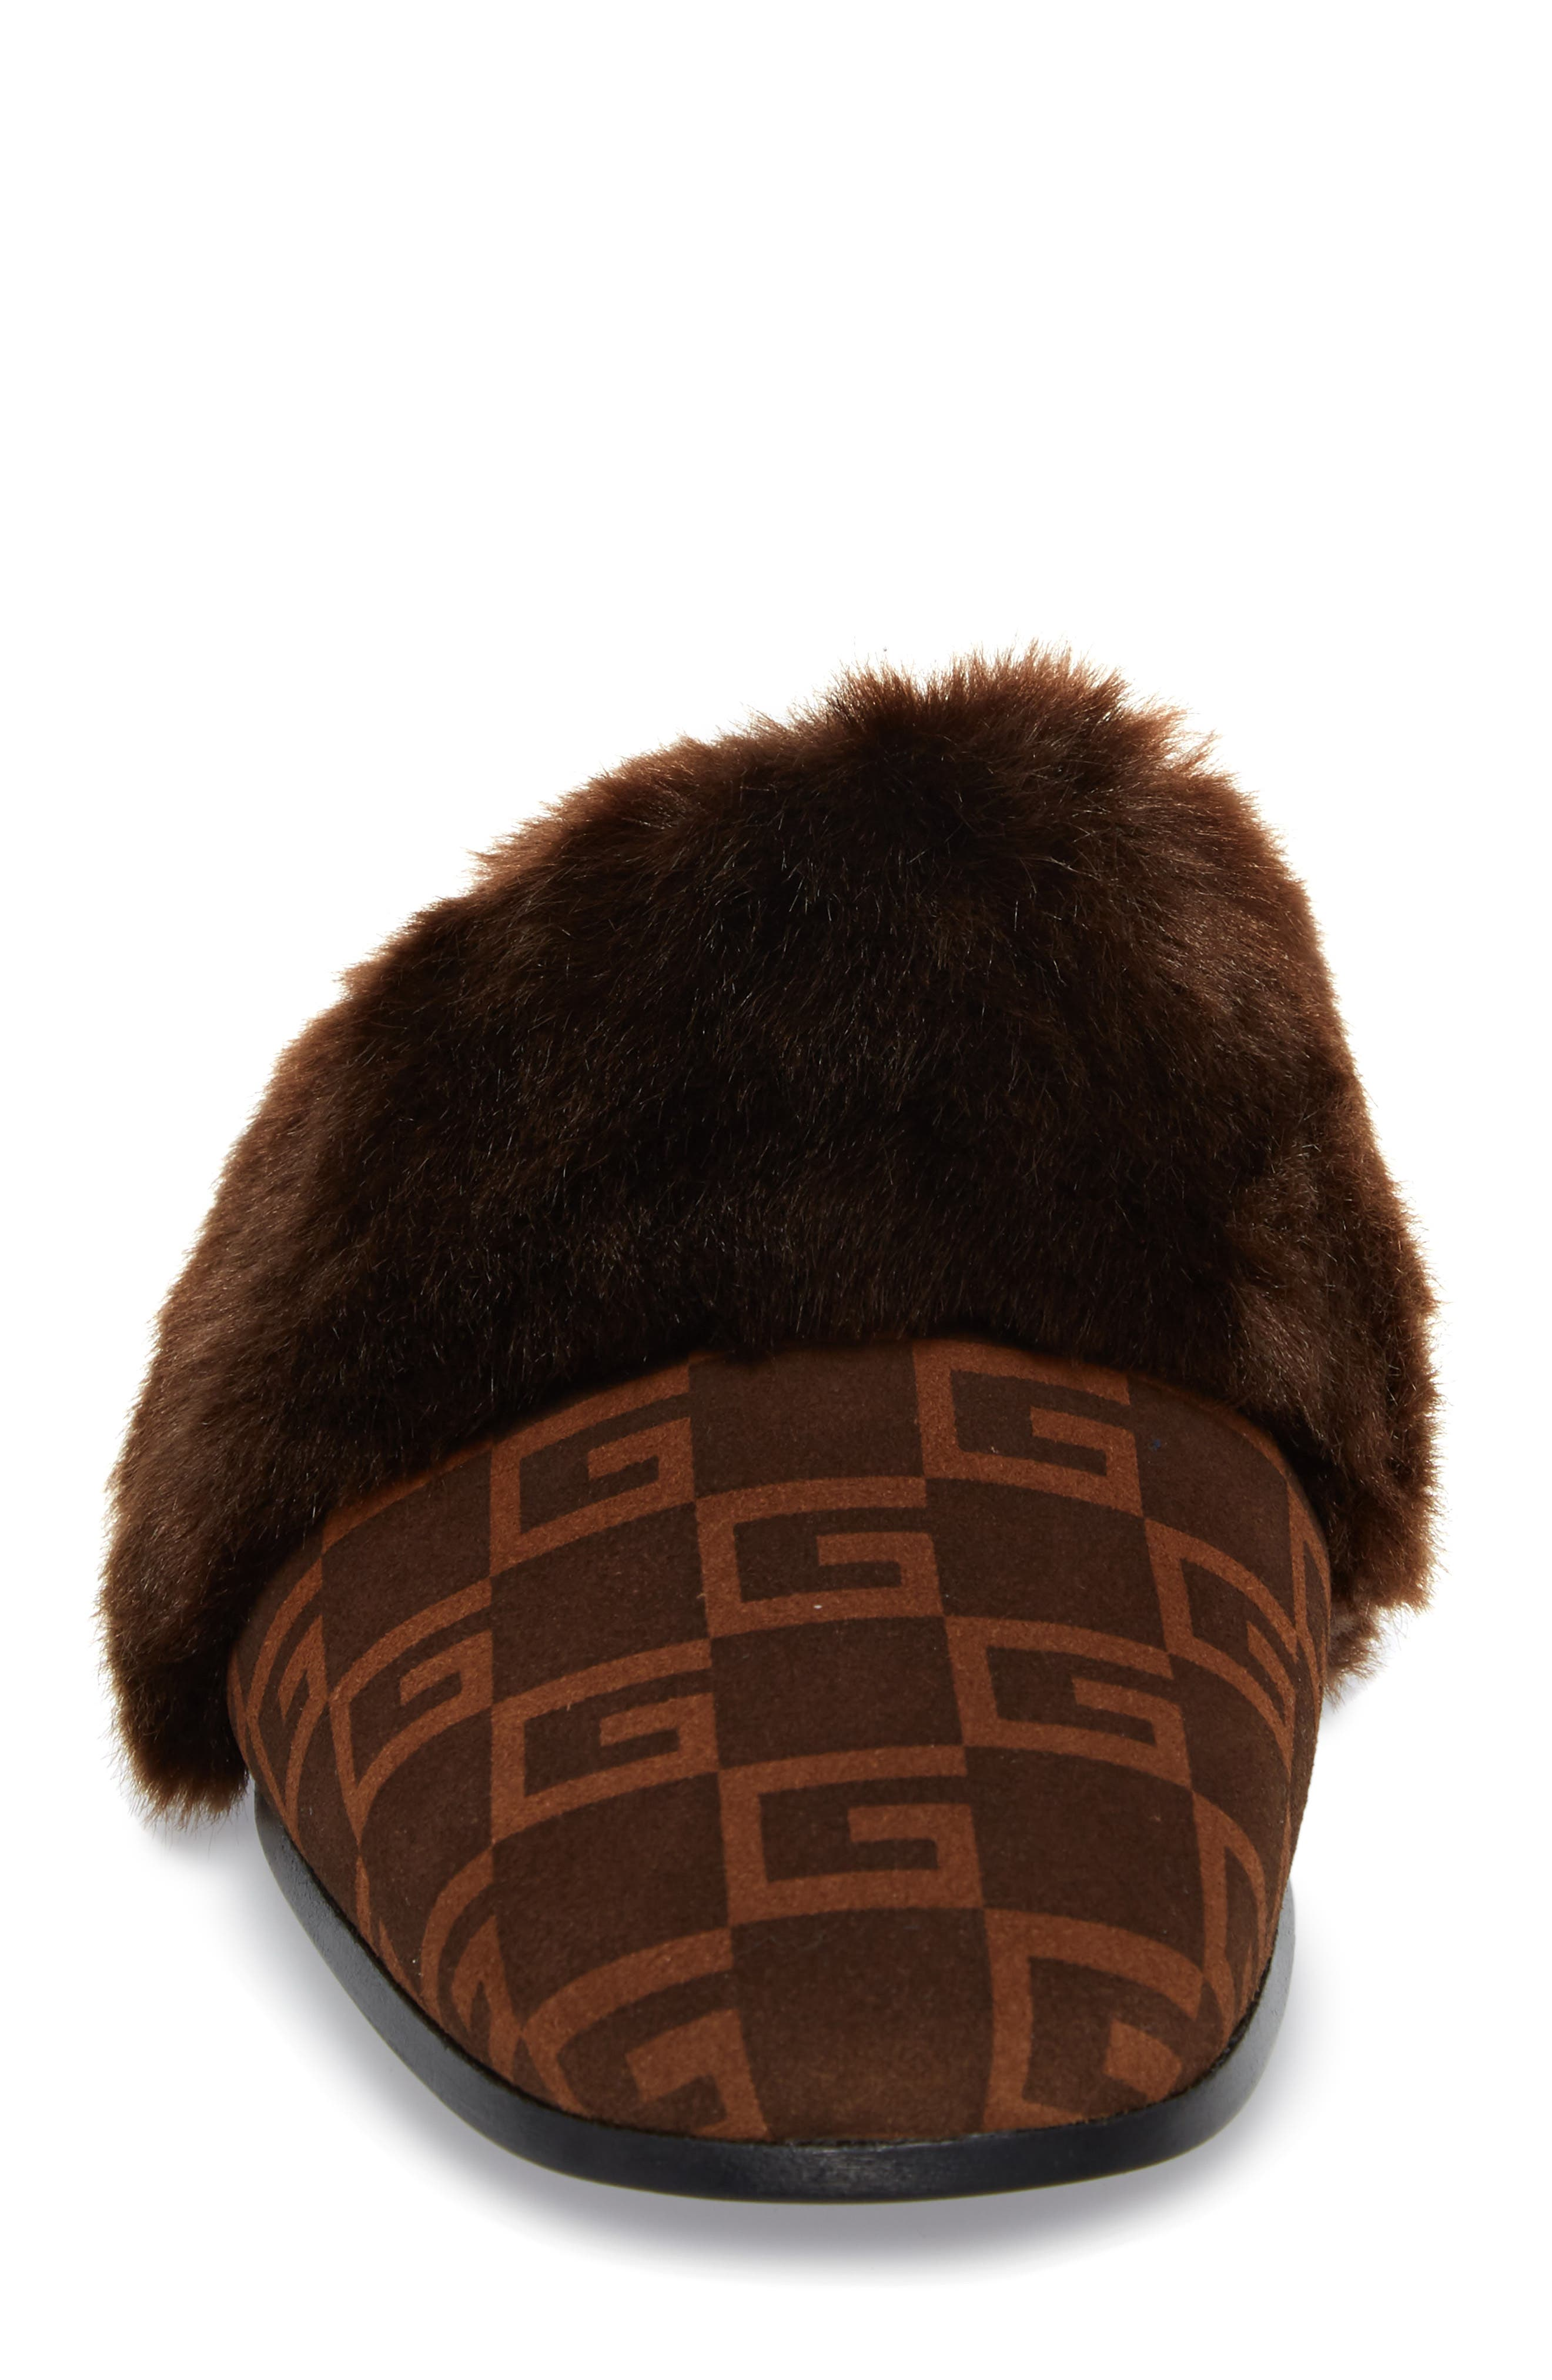 Lawrence Square-G Faux Fur Slipper,                             Alternate thumbnail 4, color,                             Brown/ Sigaro